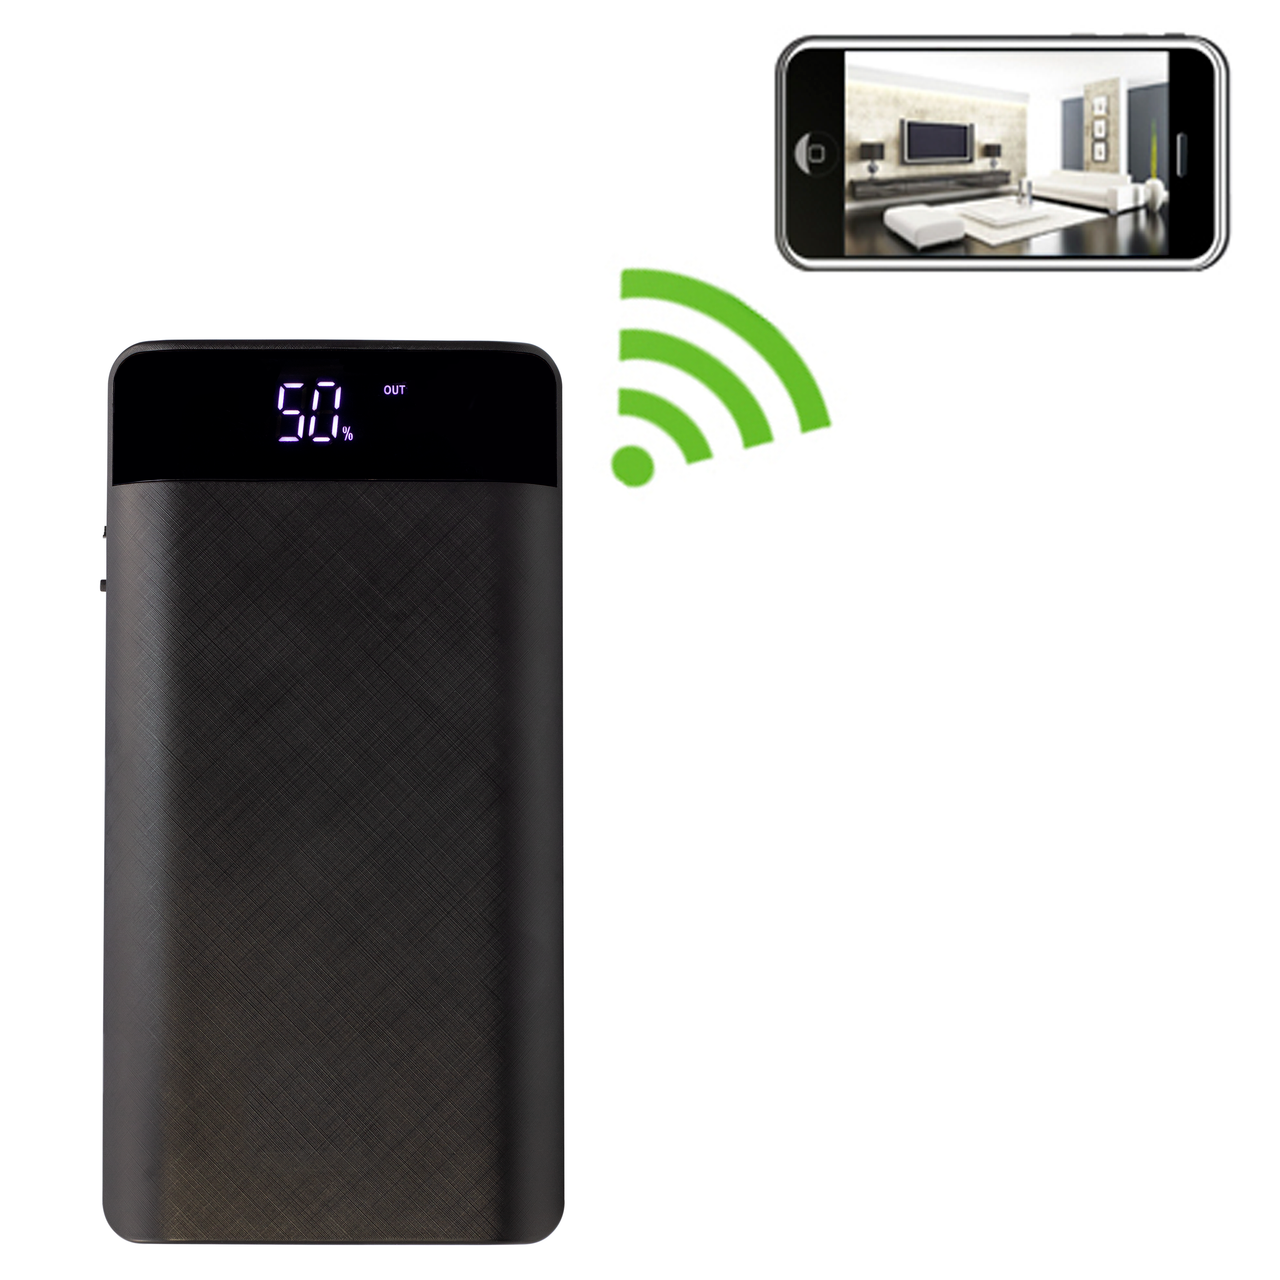 Black Box Power Bank Hidden Camera with WiFi and Extended Battery Life